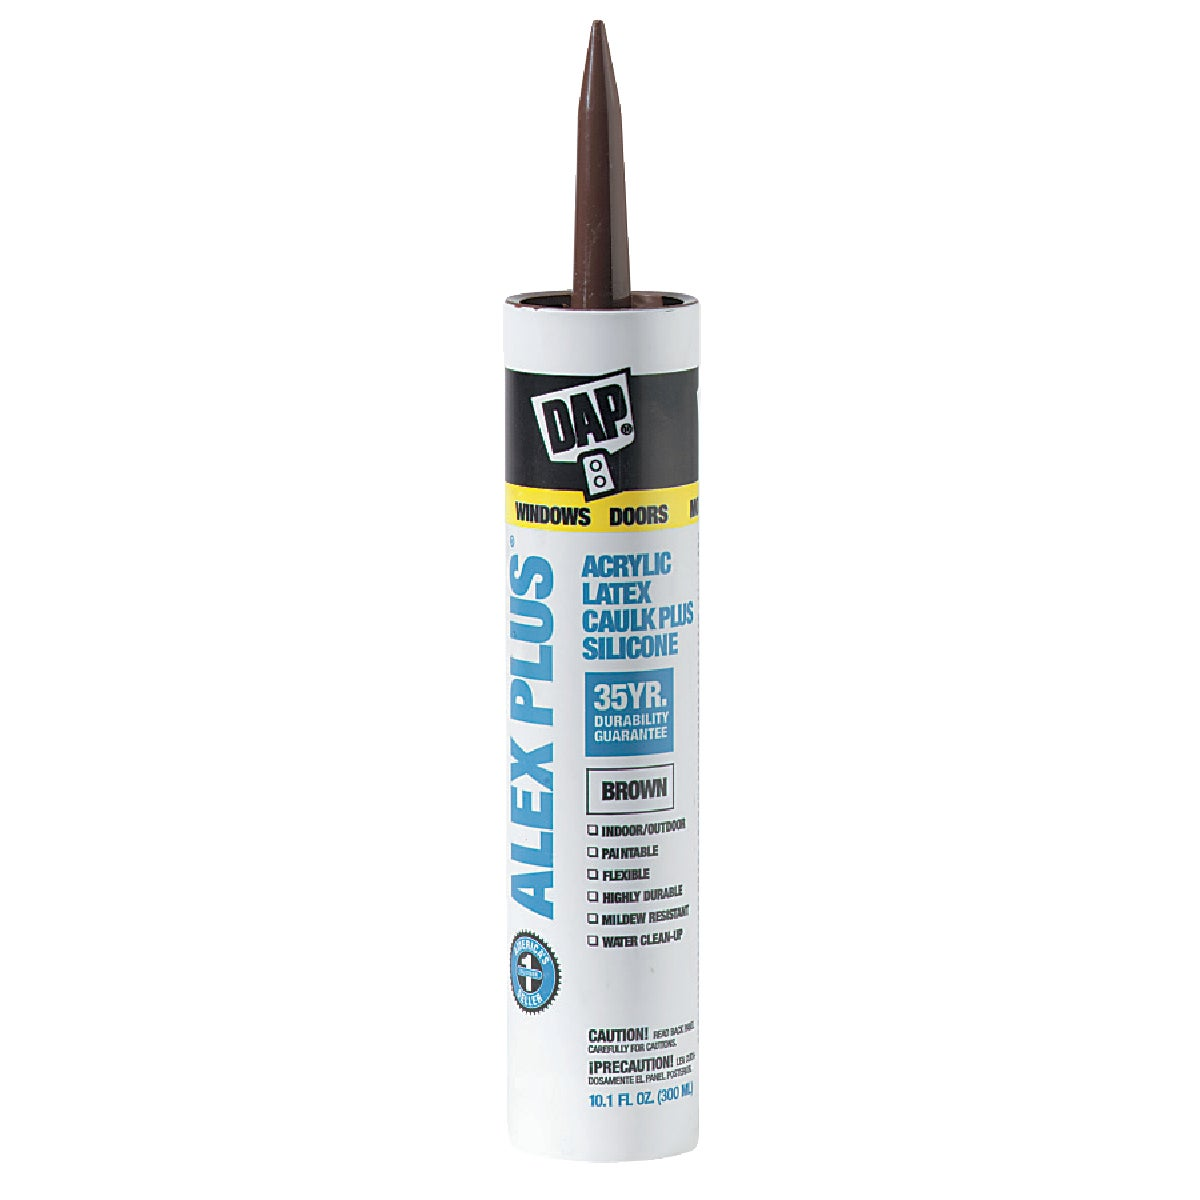 BROWN ALEX PLUS CAULK